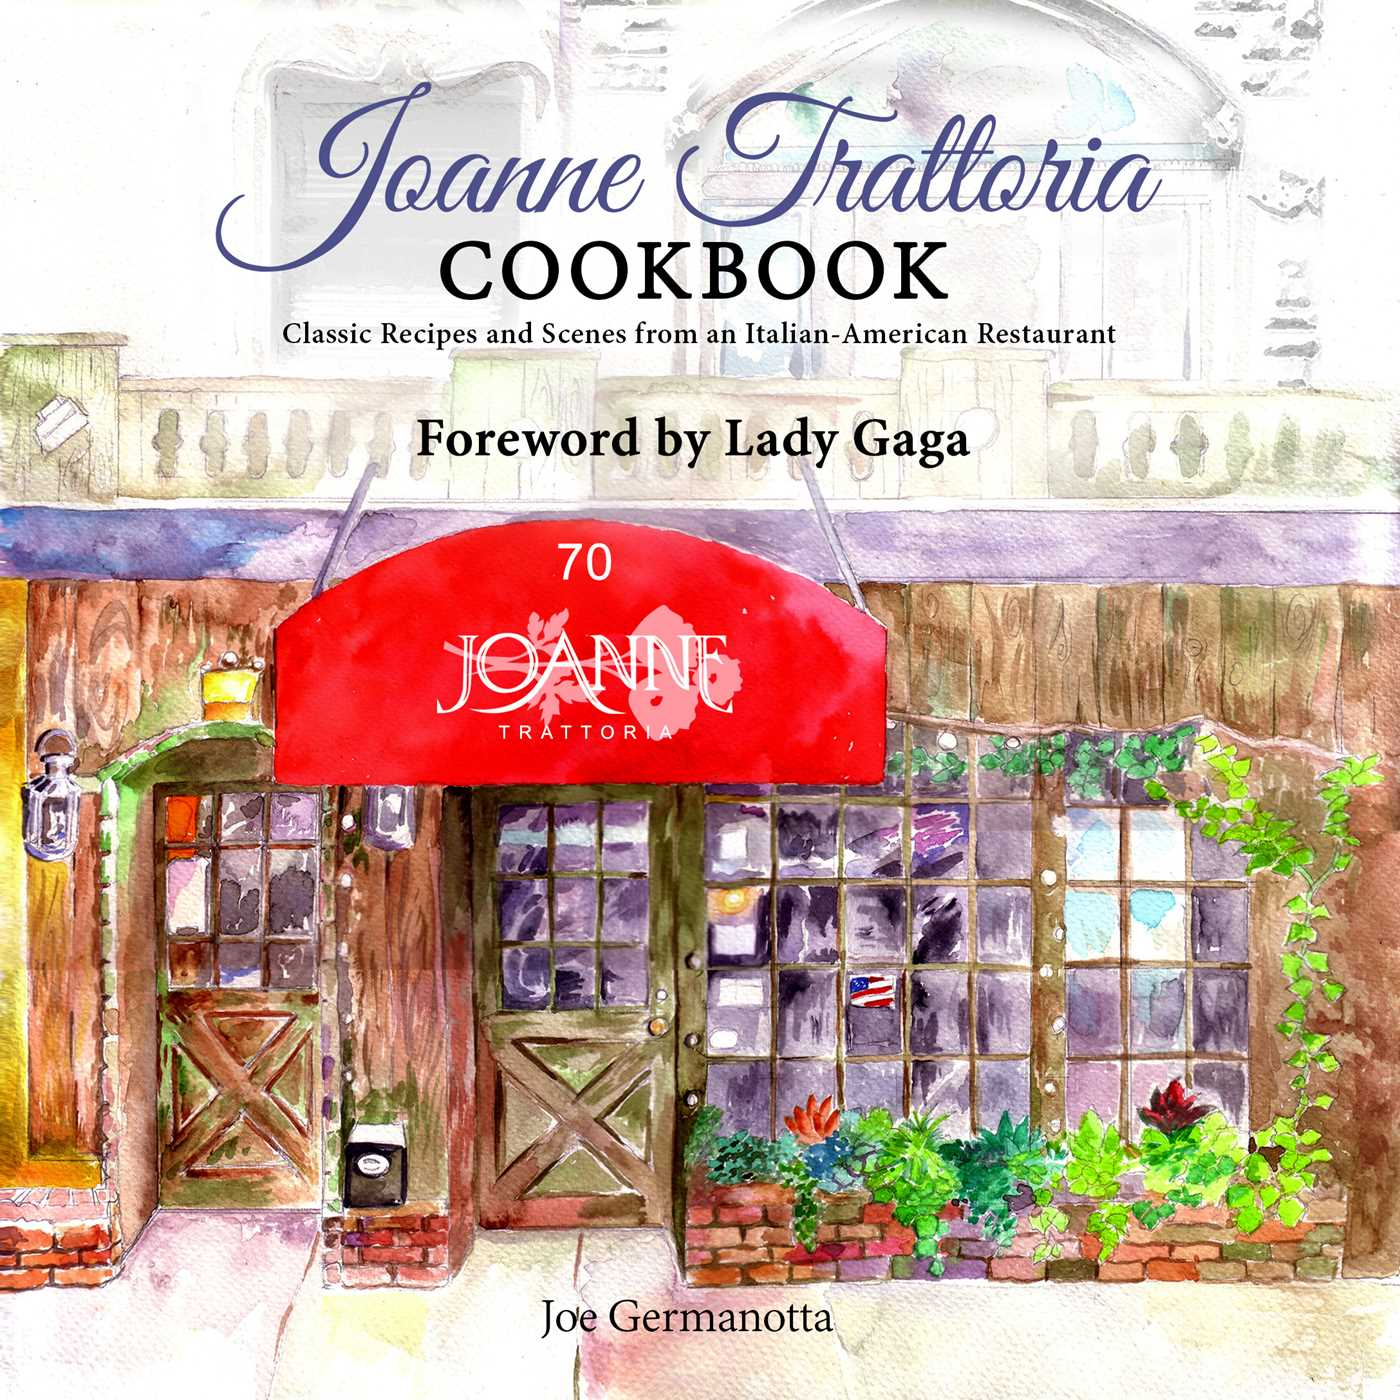 Joanne trattoria cookbook 9781682612583 hr